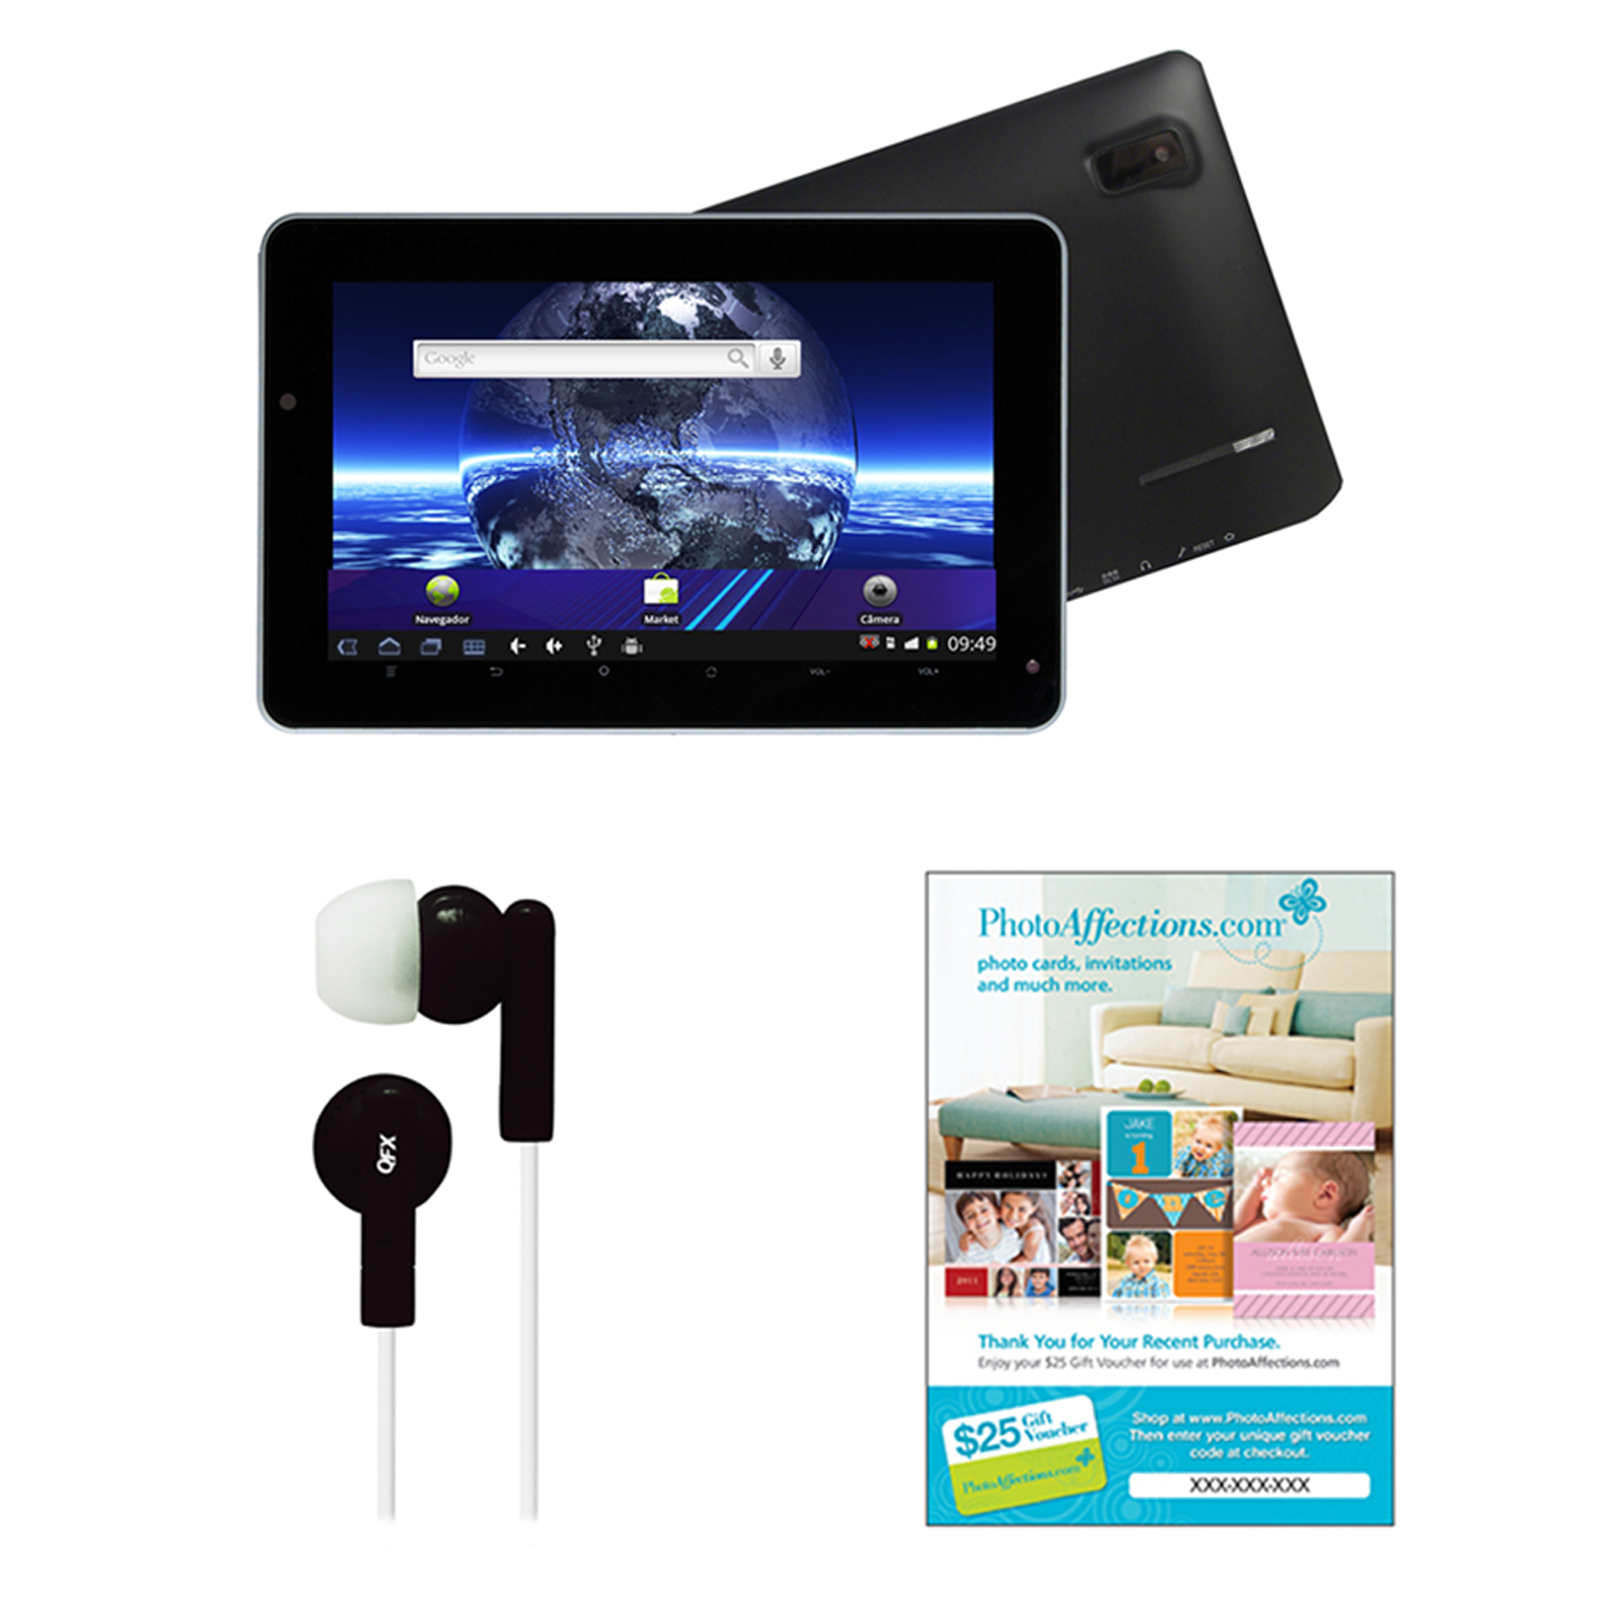 BUY Supersonic 7″ Android 4.1 Touch Screen Tablet with Earbuds and $25 Voucher NOW